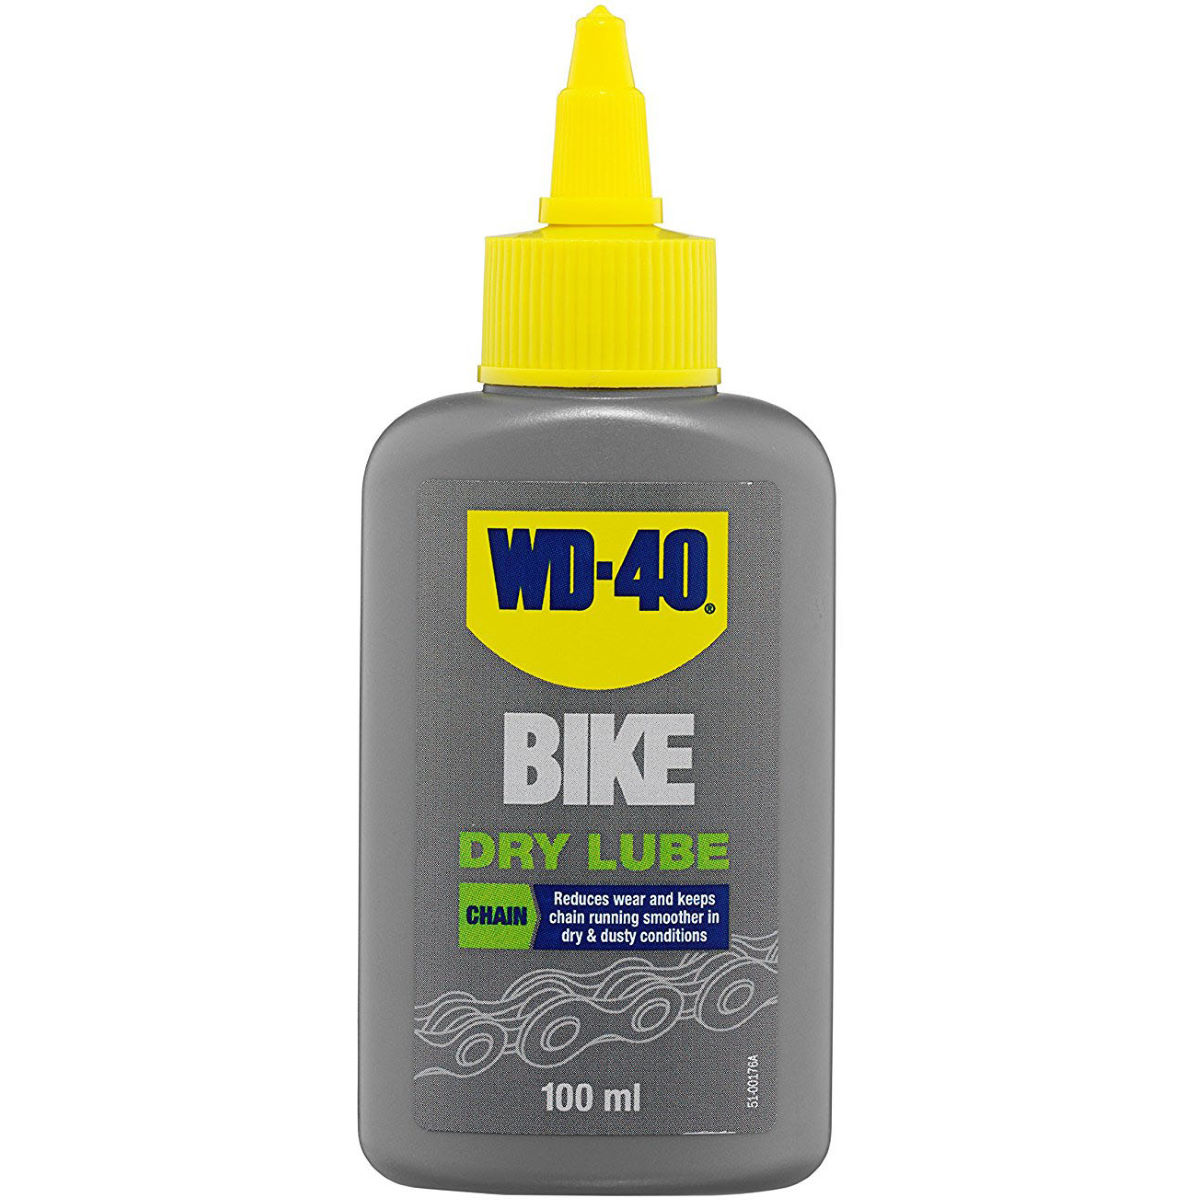 WD40 WD-40 DRY LUBE   Lube